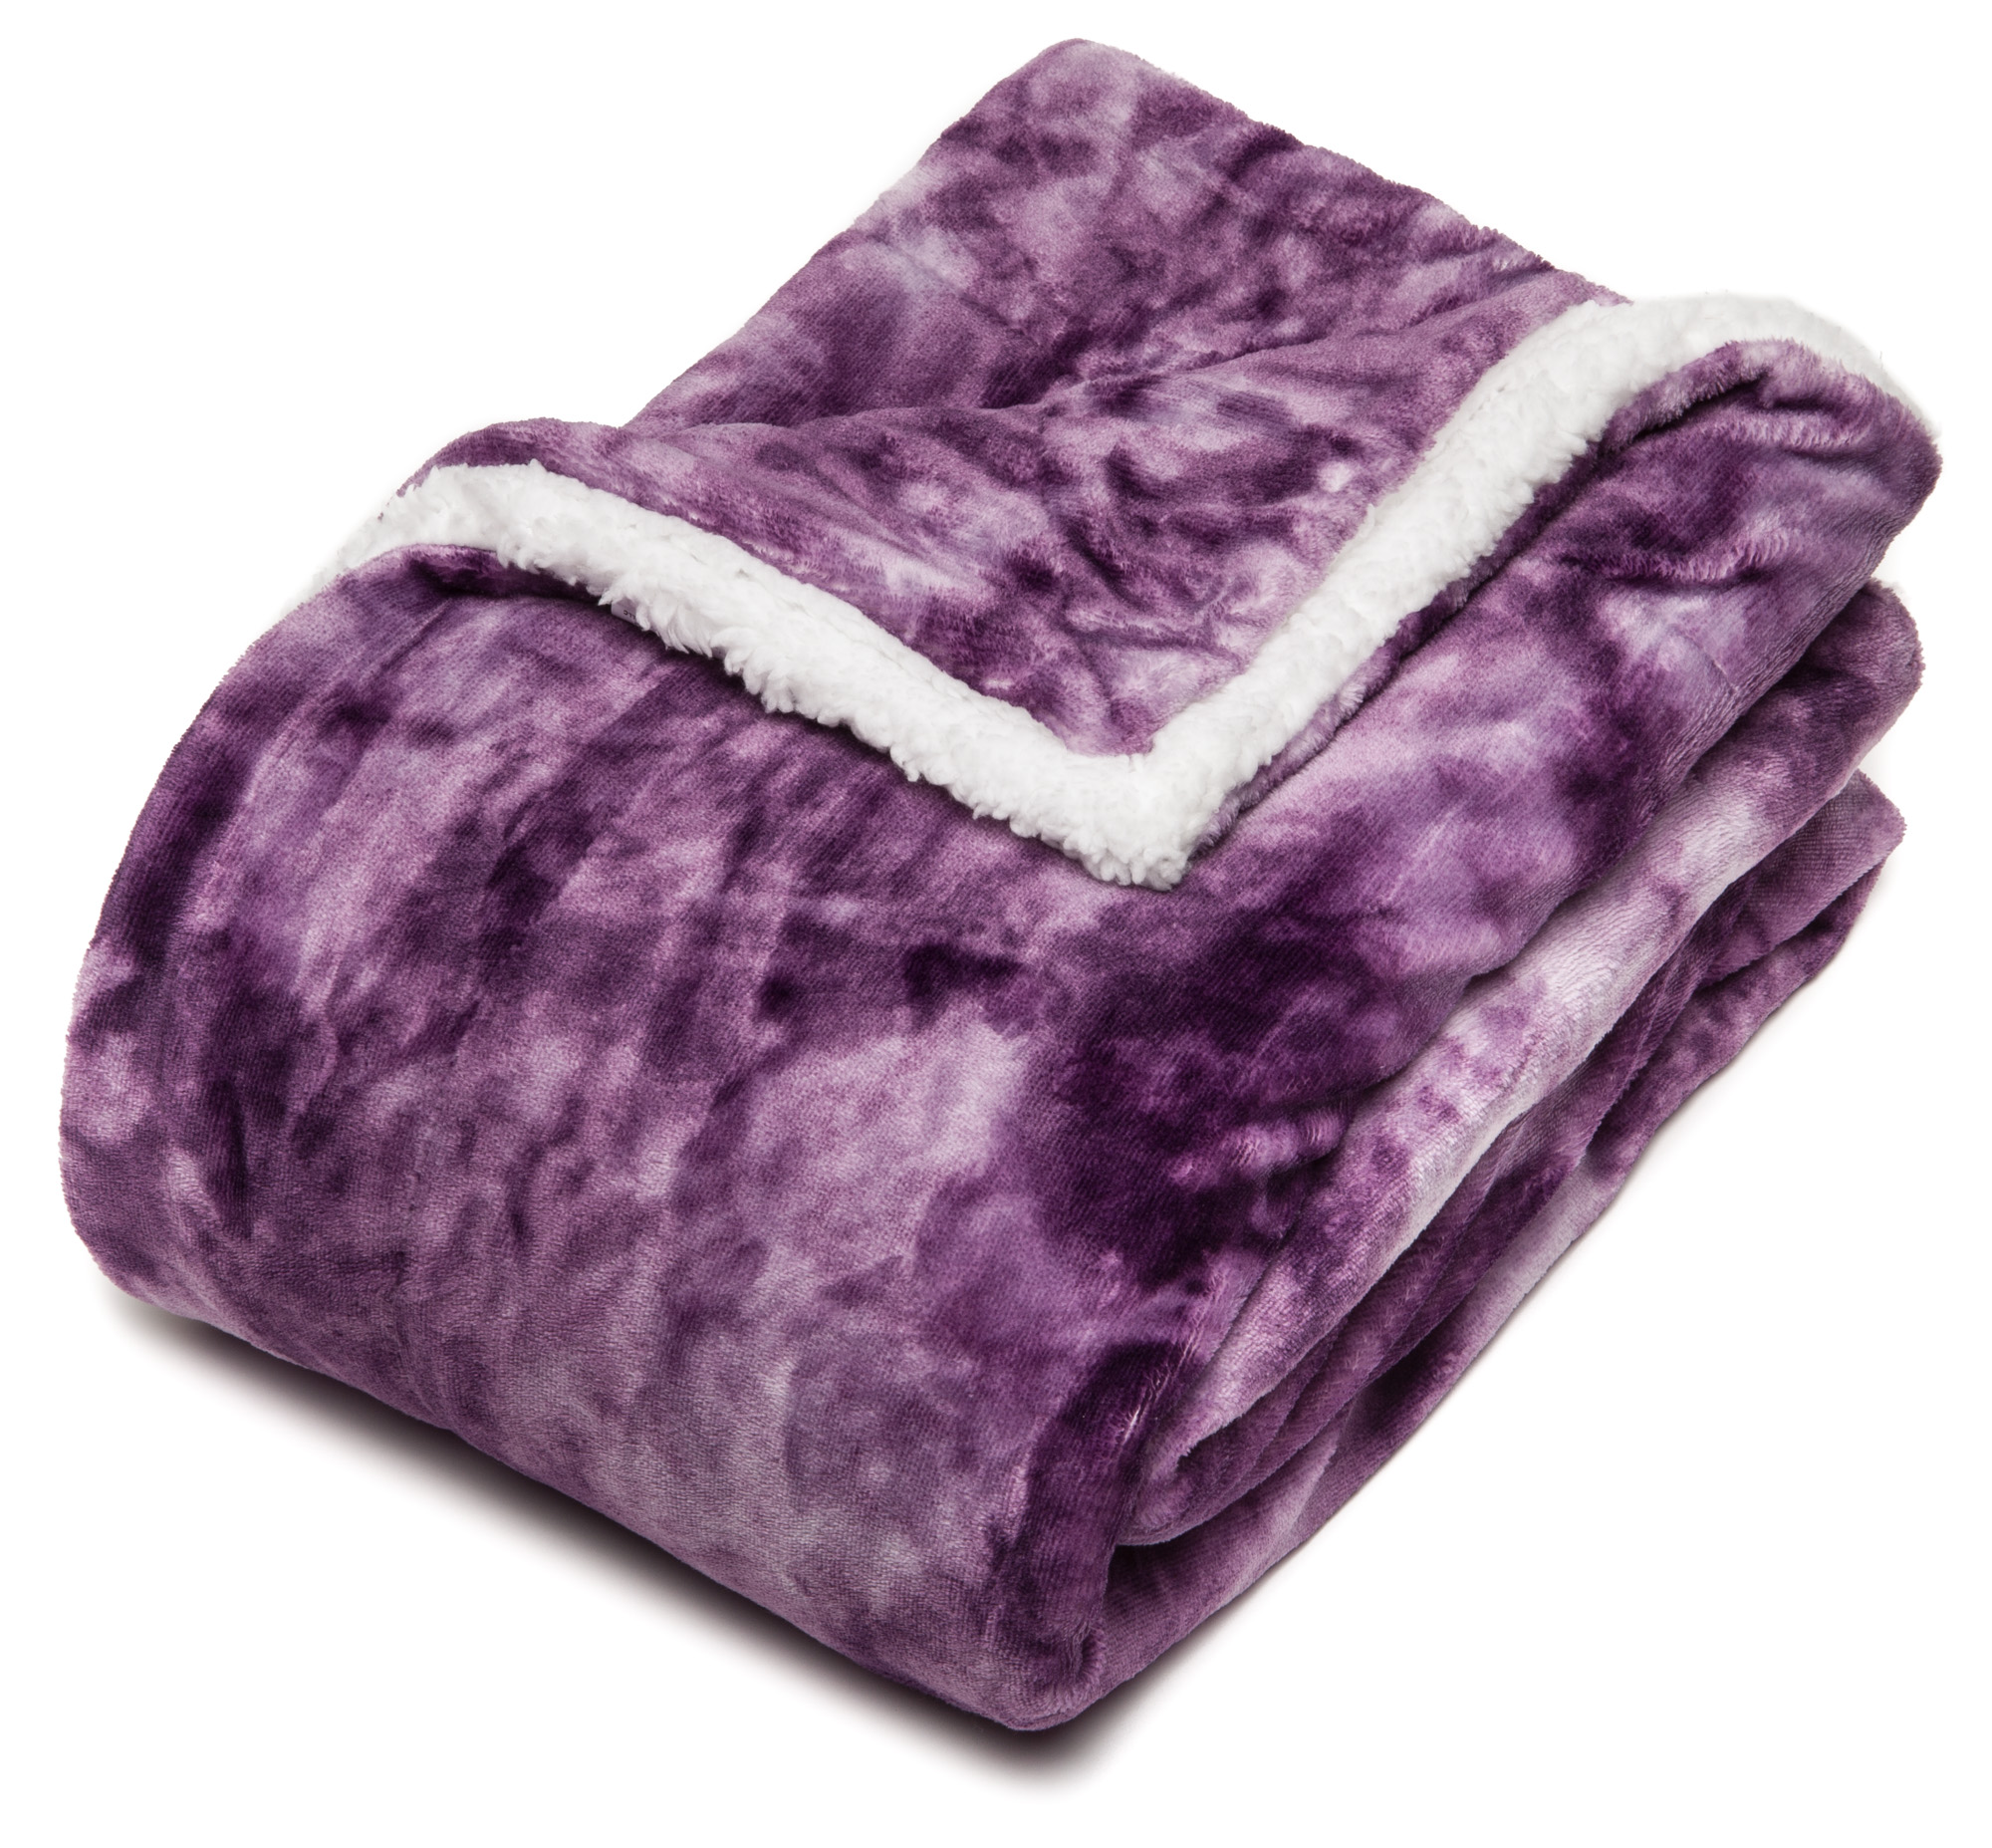 """Chanasya Cloud Print Reversible Velvet Fleece Throw Blanket - for Couch Bed Sofa Chair Day Nap - Super Soft Cozy Snuggly Comfort Chick Plush Light Weight Sherpa Blanket - 50""""x65"""" - Black"""